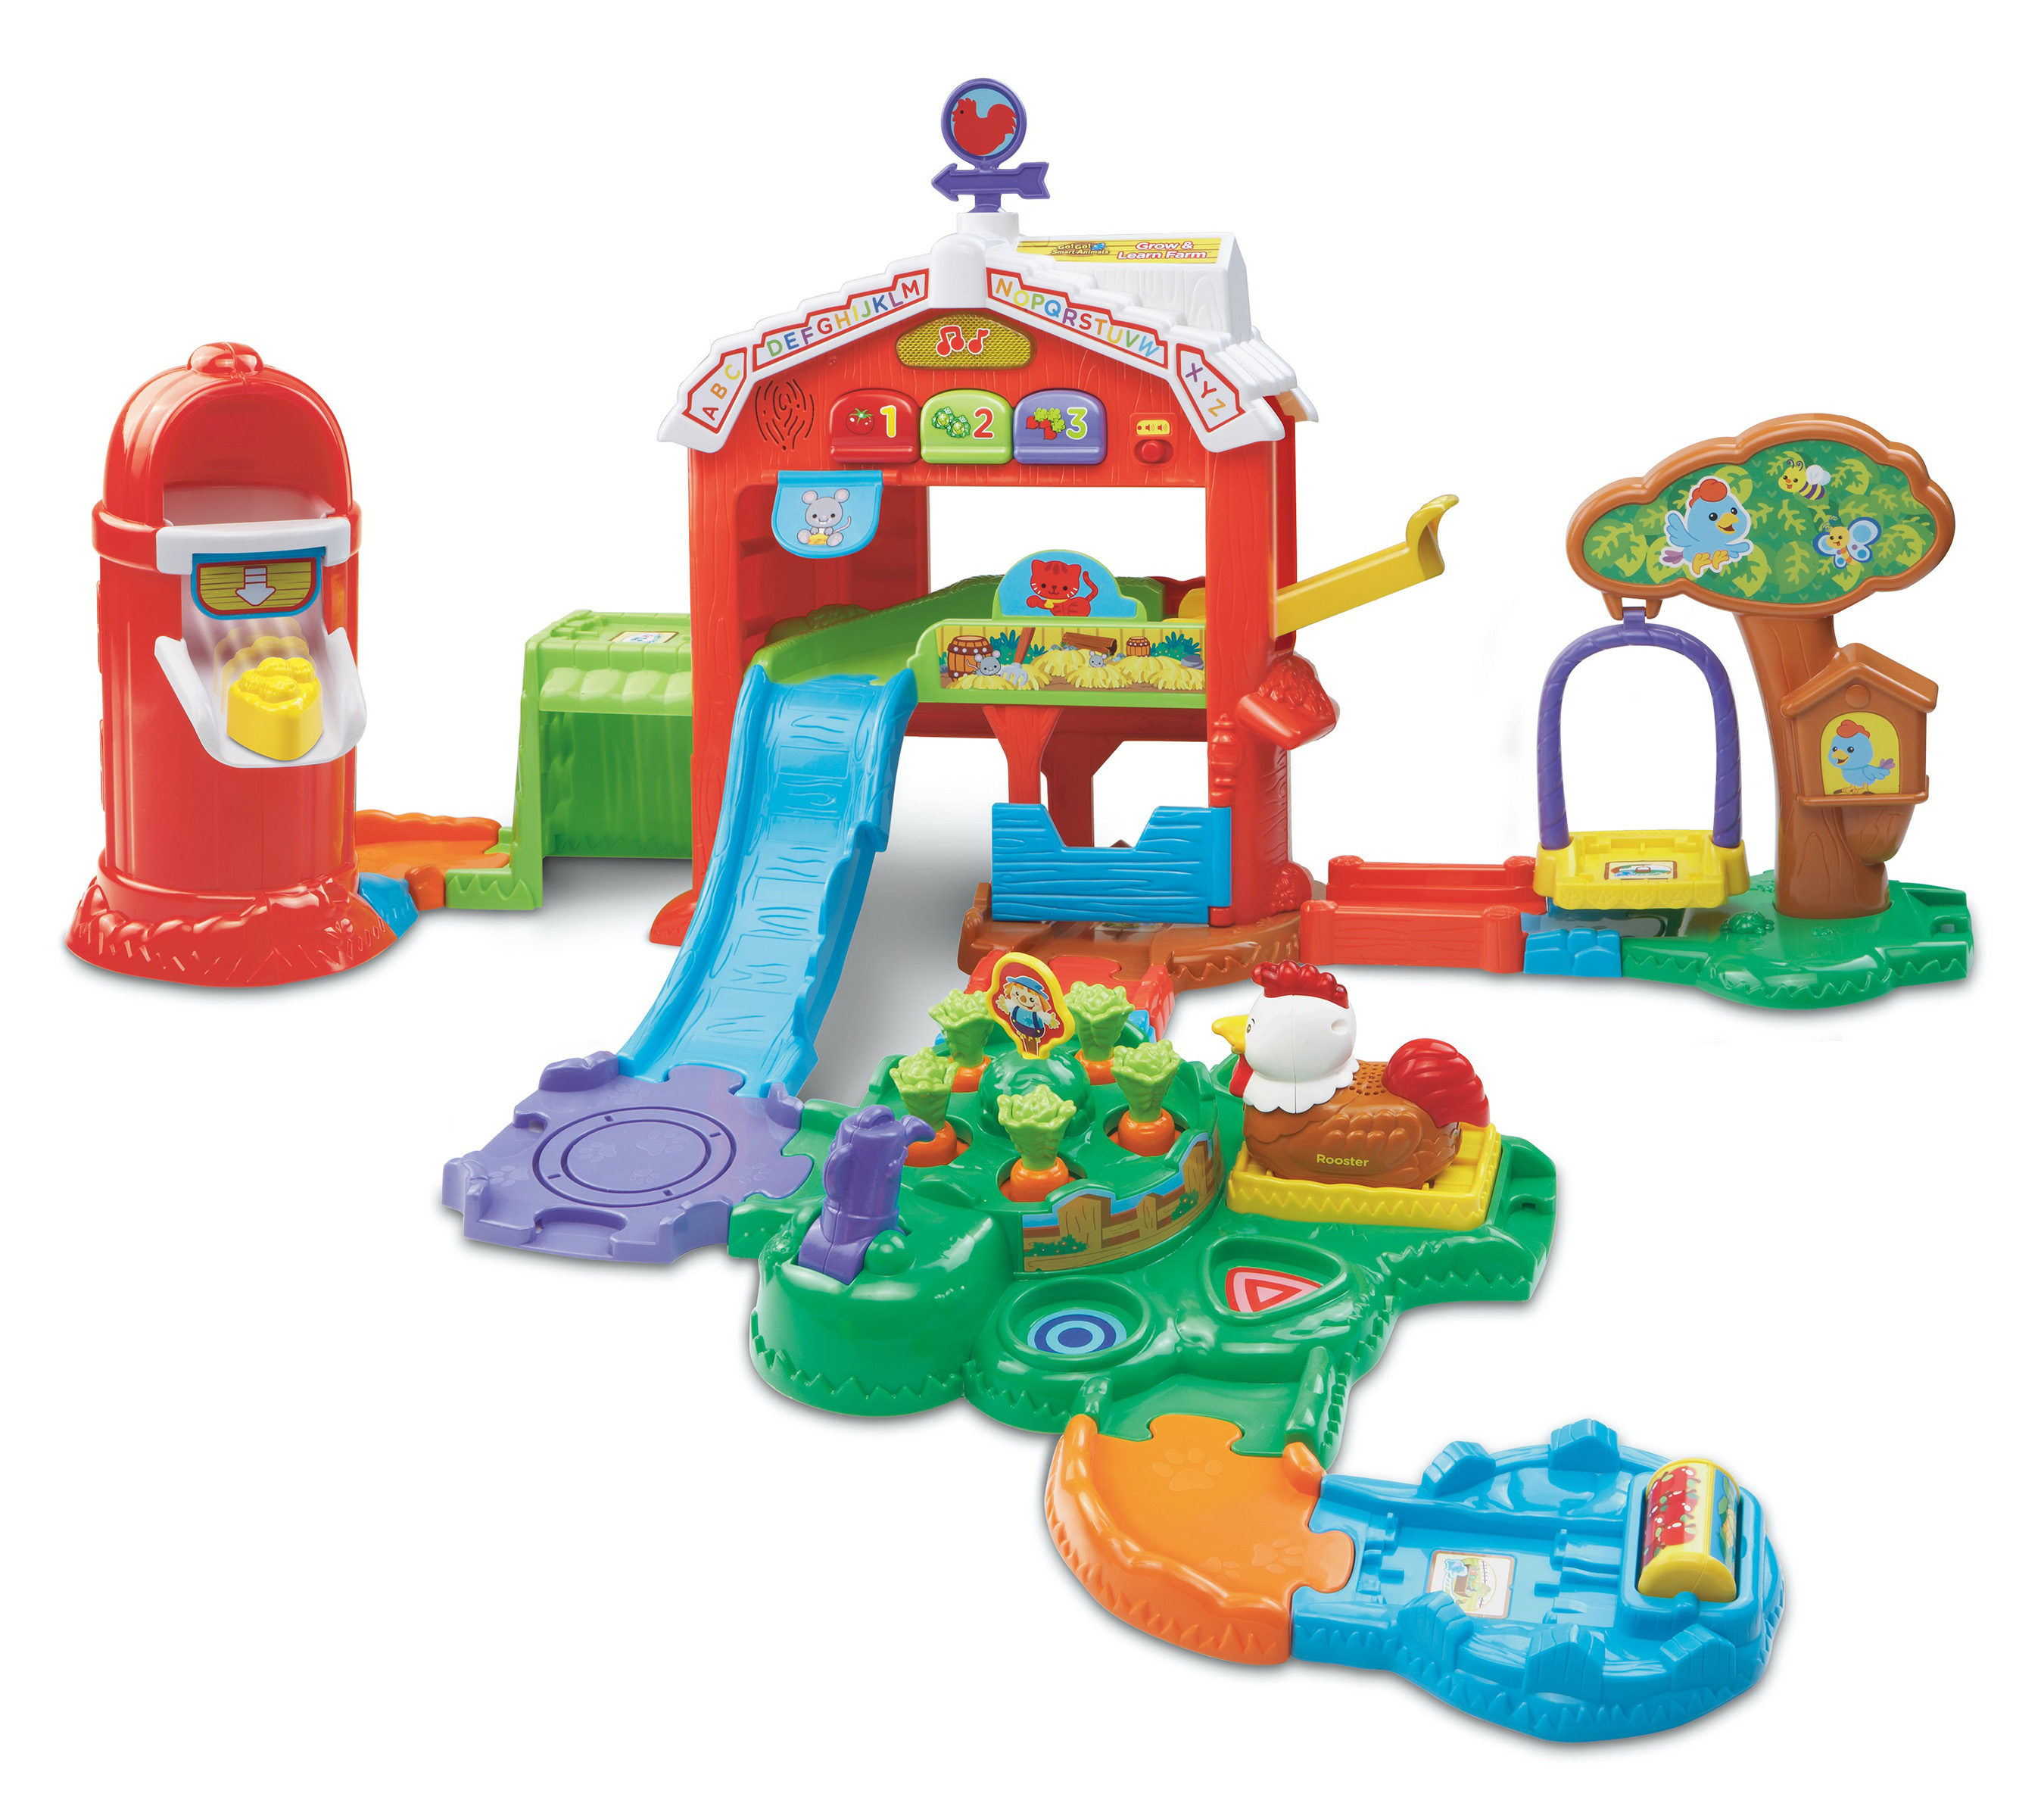 Adventures Await With New Go Go Smart Playsets From Vtech 174